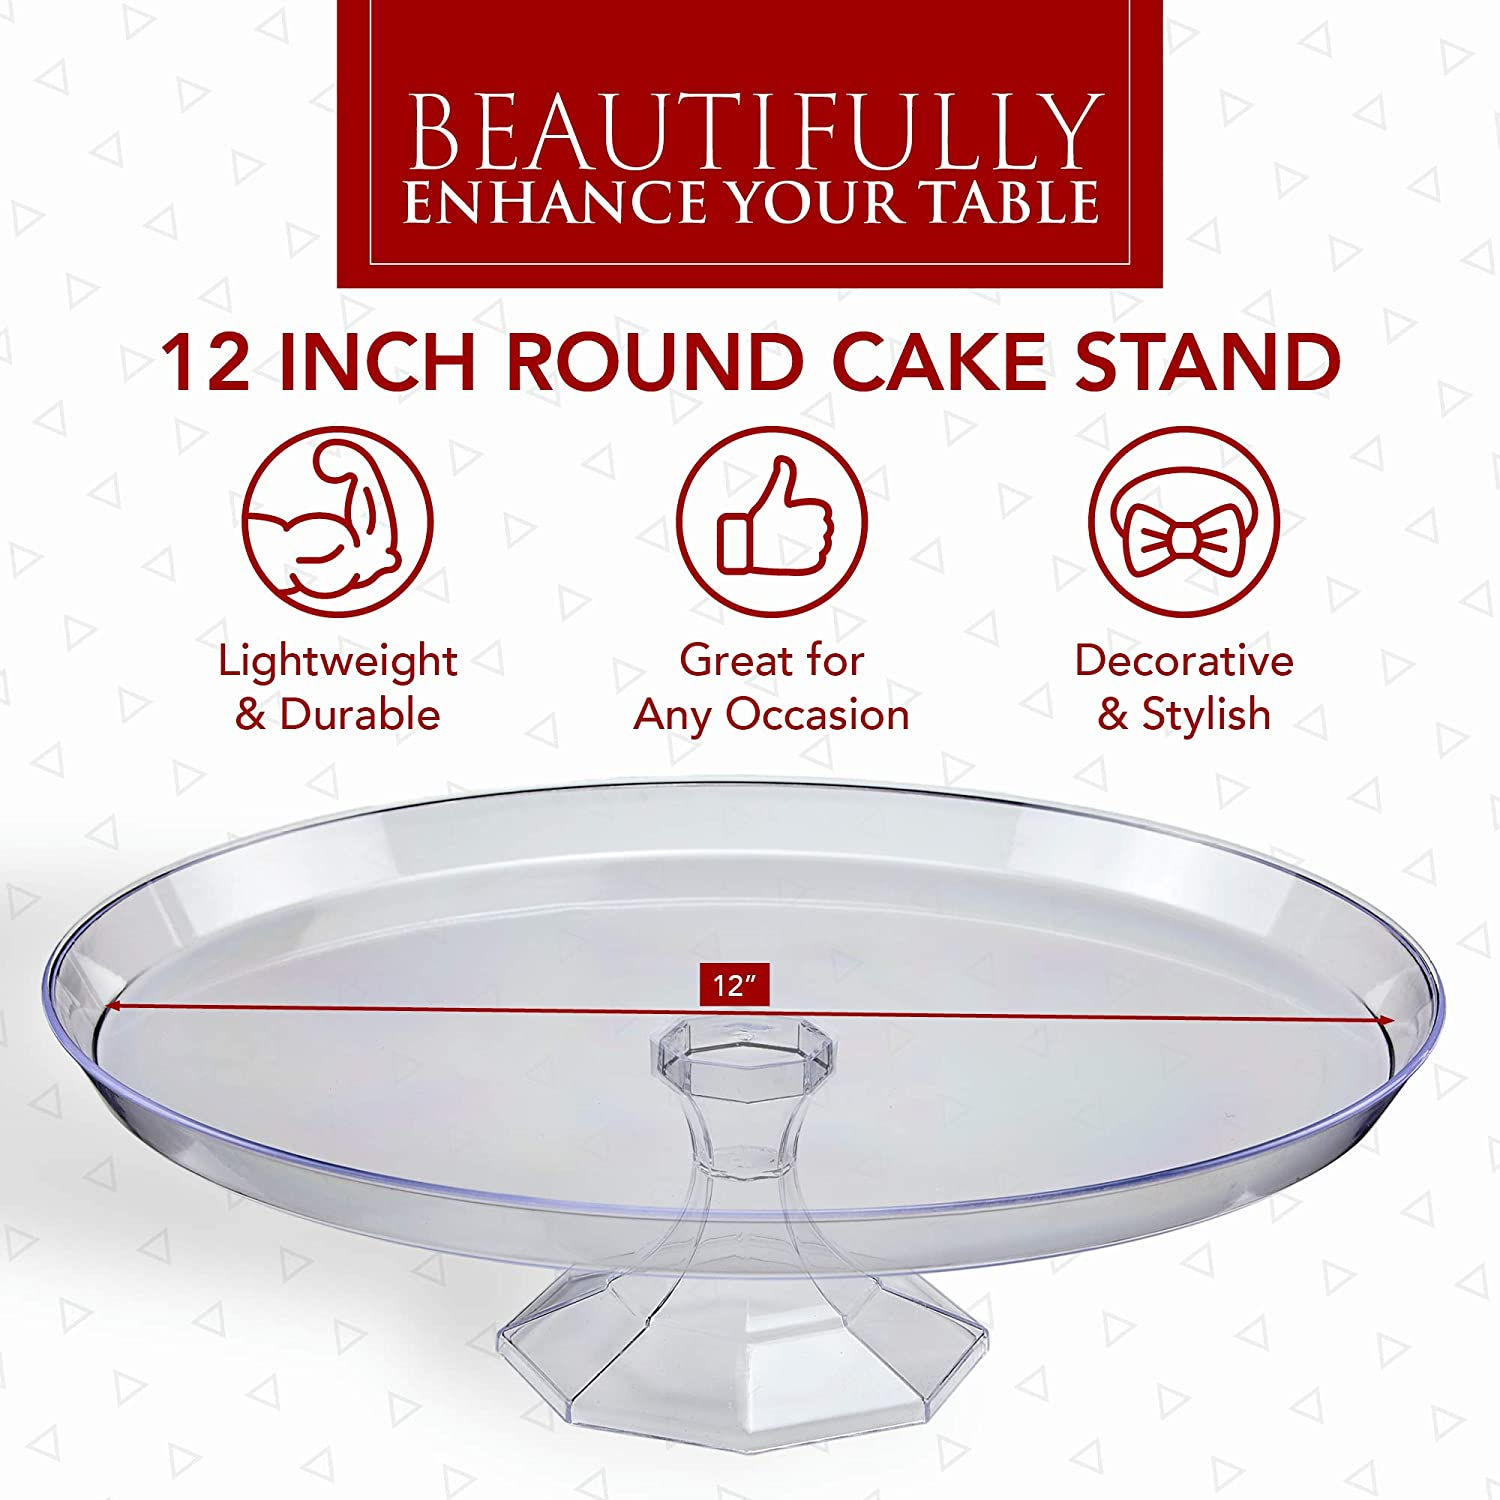 Cake Holder Plastic Cake Stands Pedestal Cake Display Stands for Wedding Cakes 13.5 Inches Disposable Cupcake Stands Cake Platter Serving Platters for Party Prestee 3 Pack Clear Dessert Stands